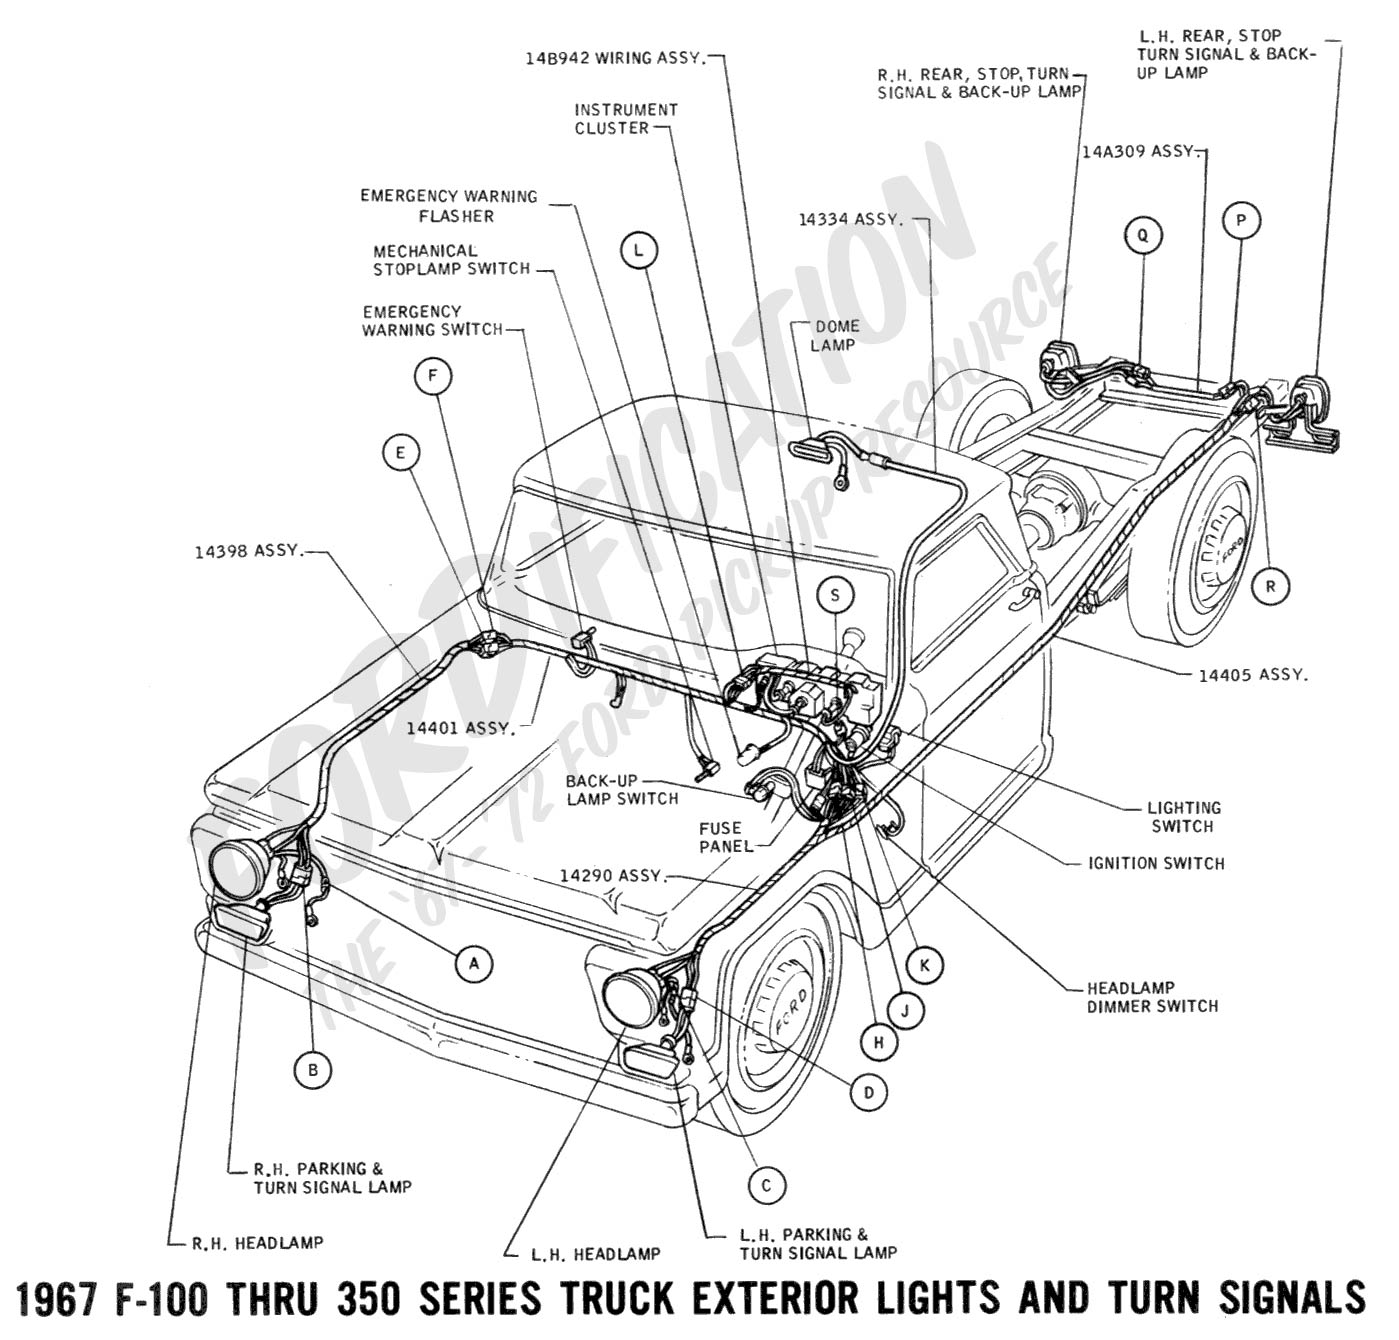 wiring 1967extlights01 ford truck technical drawings and schematics section h wiring 2013 Ford F350 Wiring Diagram at mr168.co